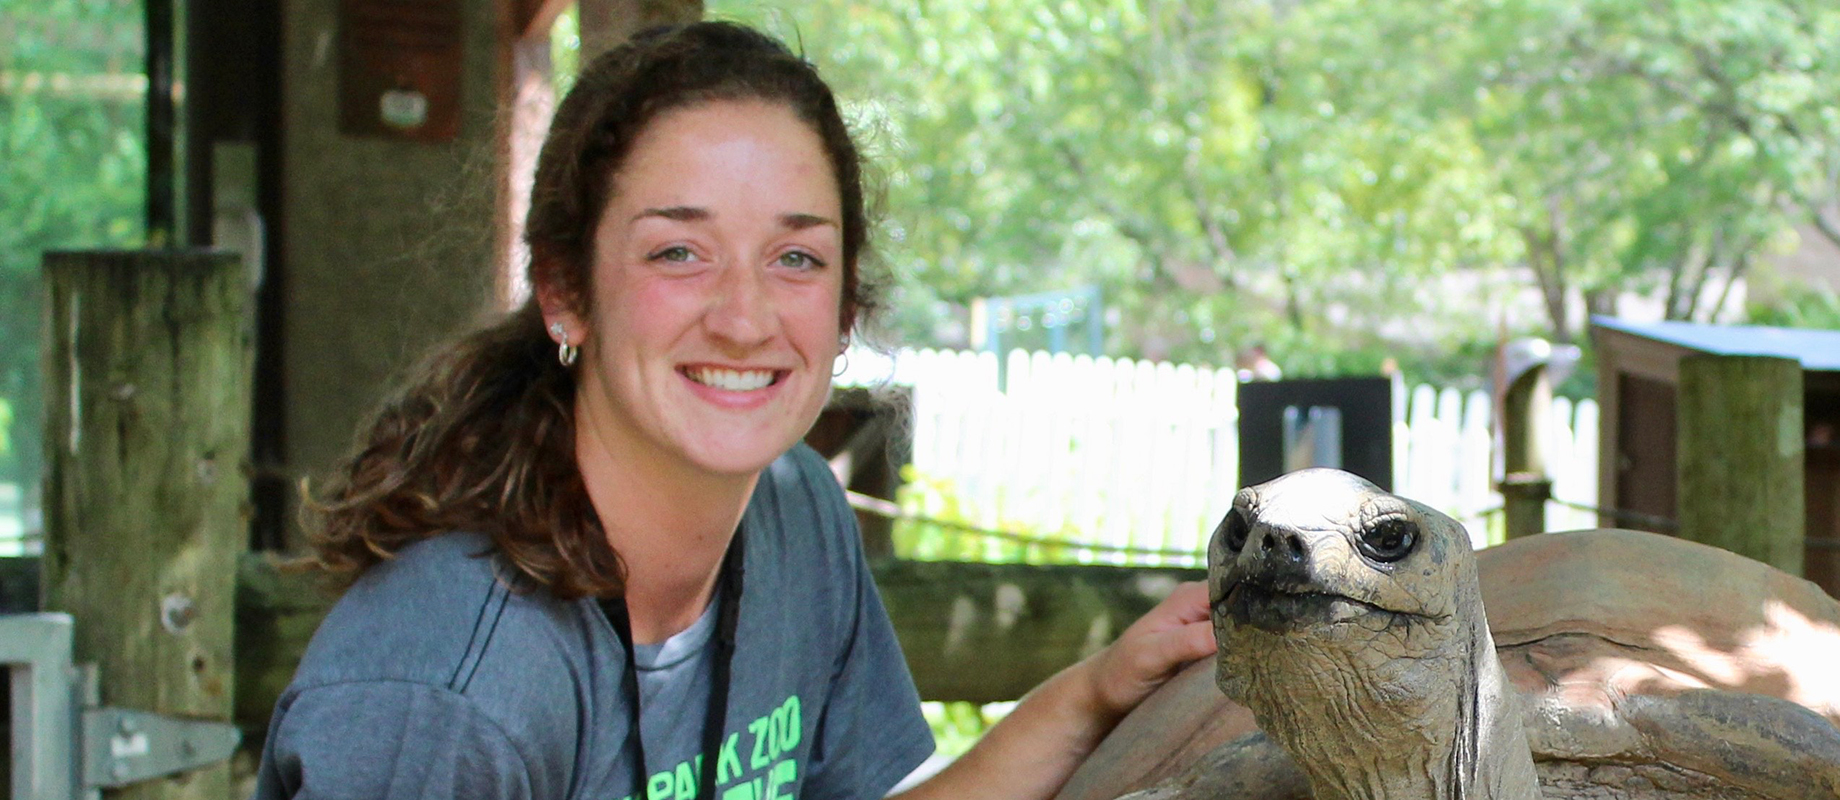 Simpson College graduate Emma Fleddermann with a tortoise at Blank Park Zoo.